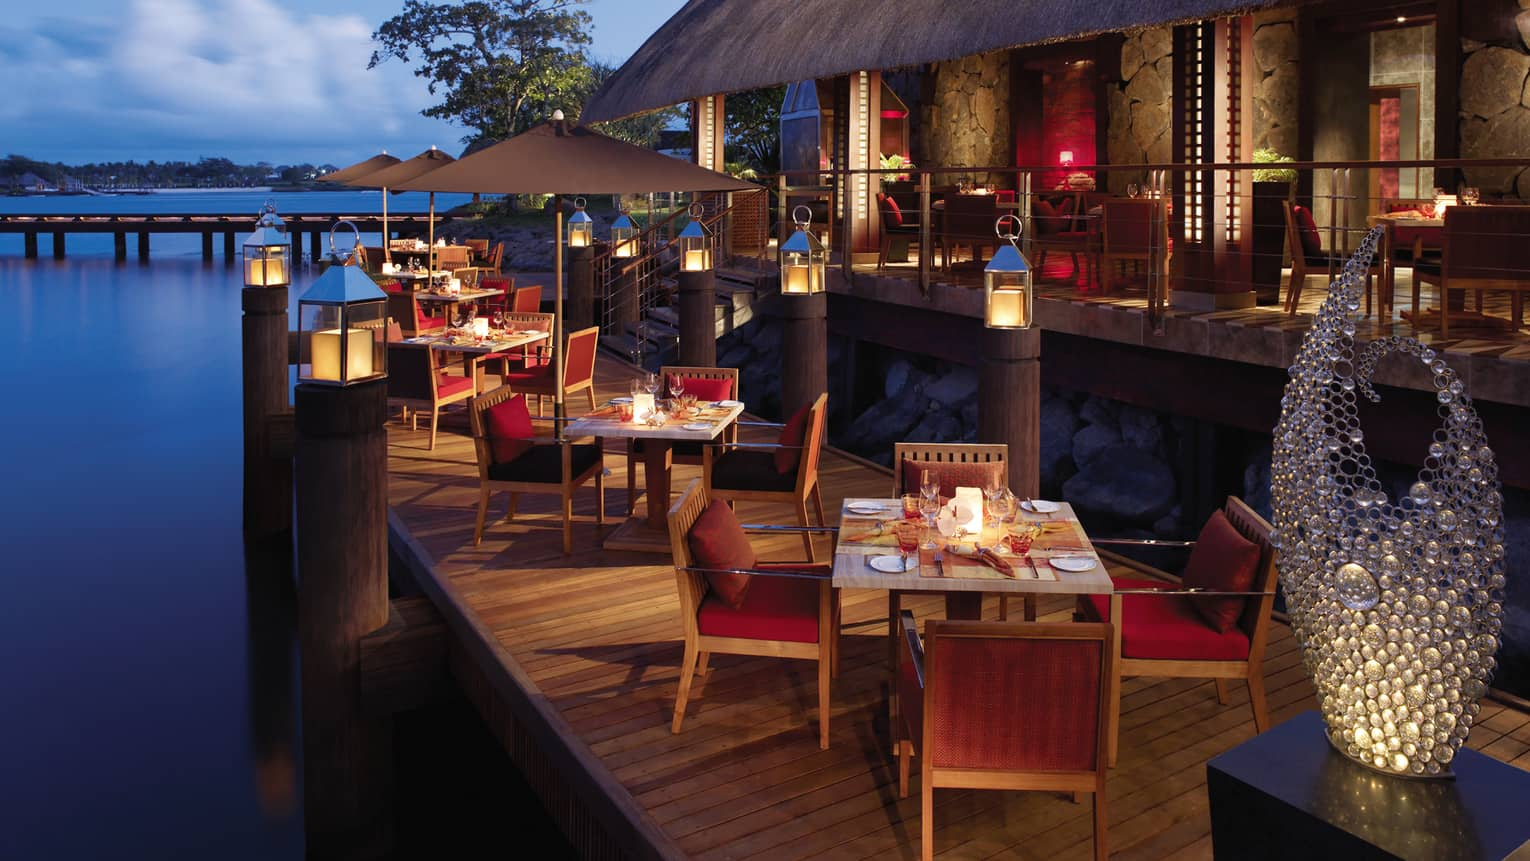 Outdoor dining tables on a pier overlook the waters.